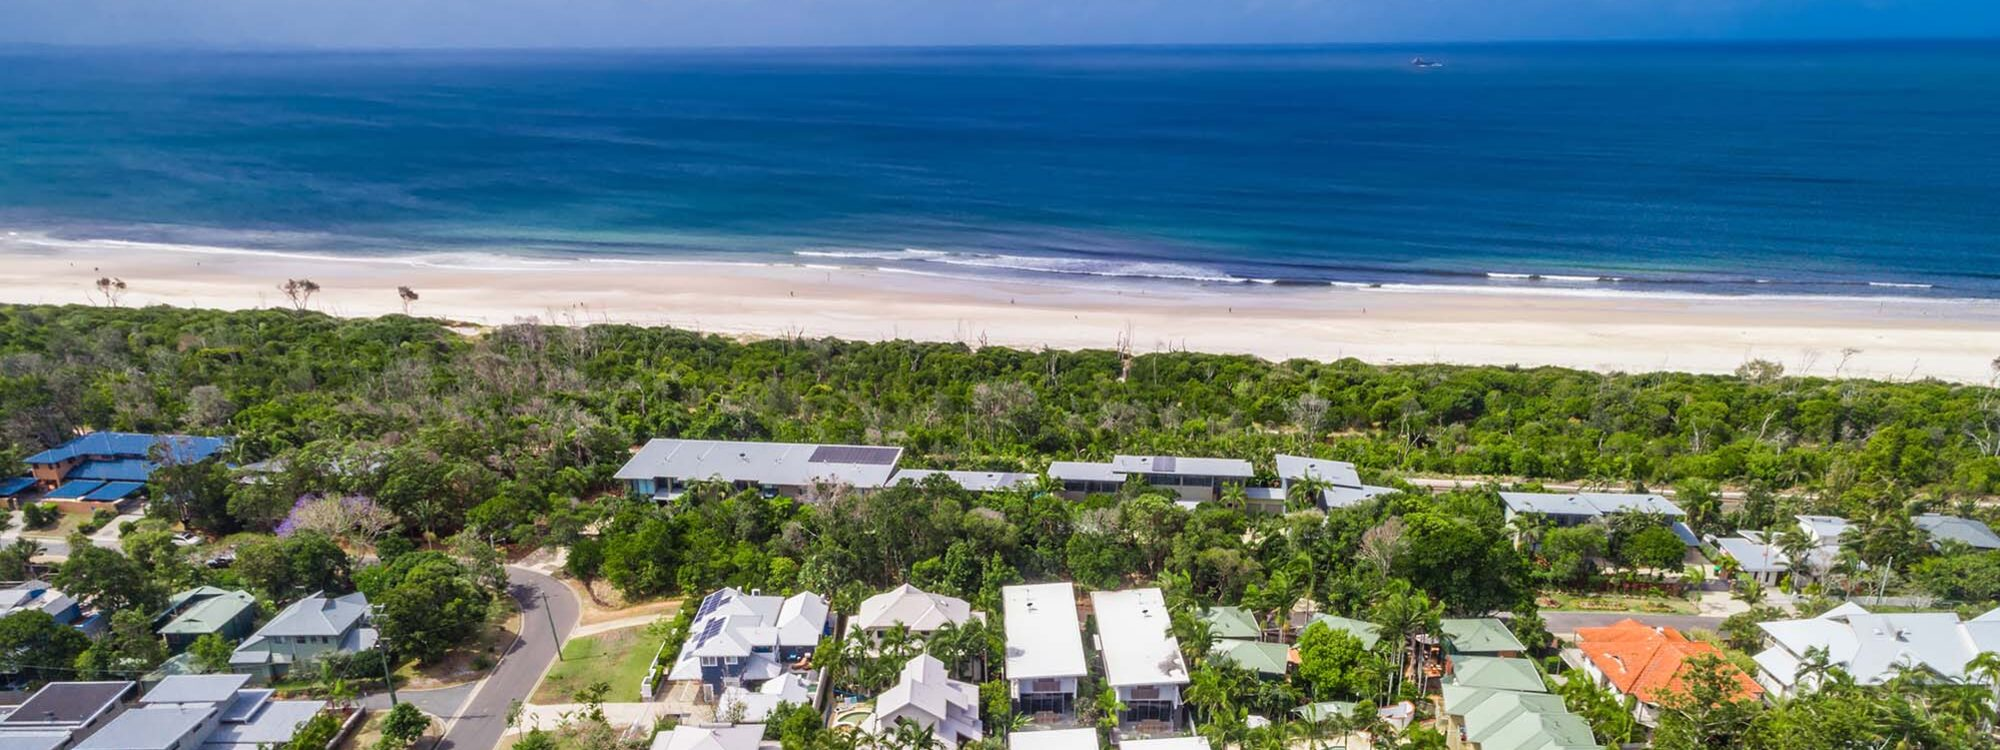 Kokos Beach Houses - Byron Bay - Aerial Towards Ocean